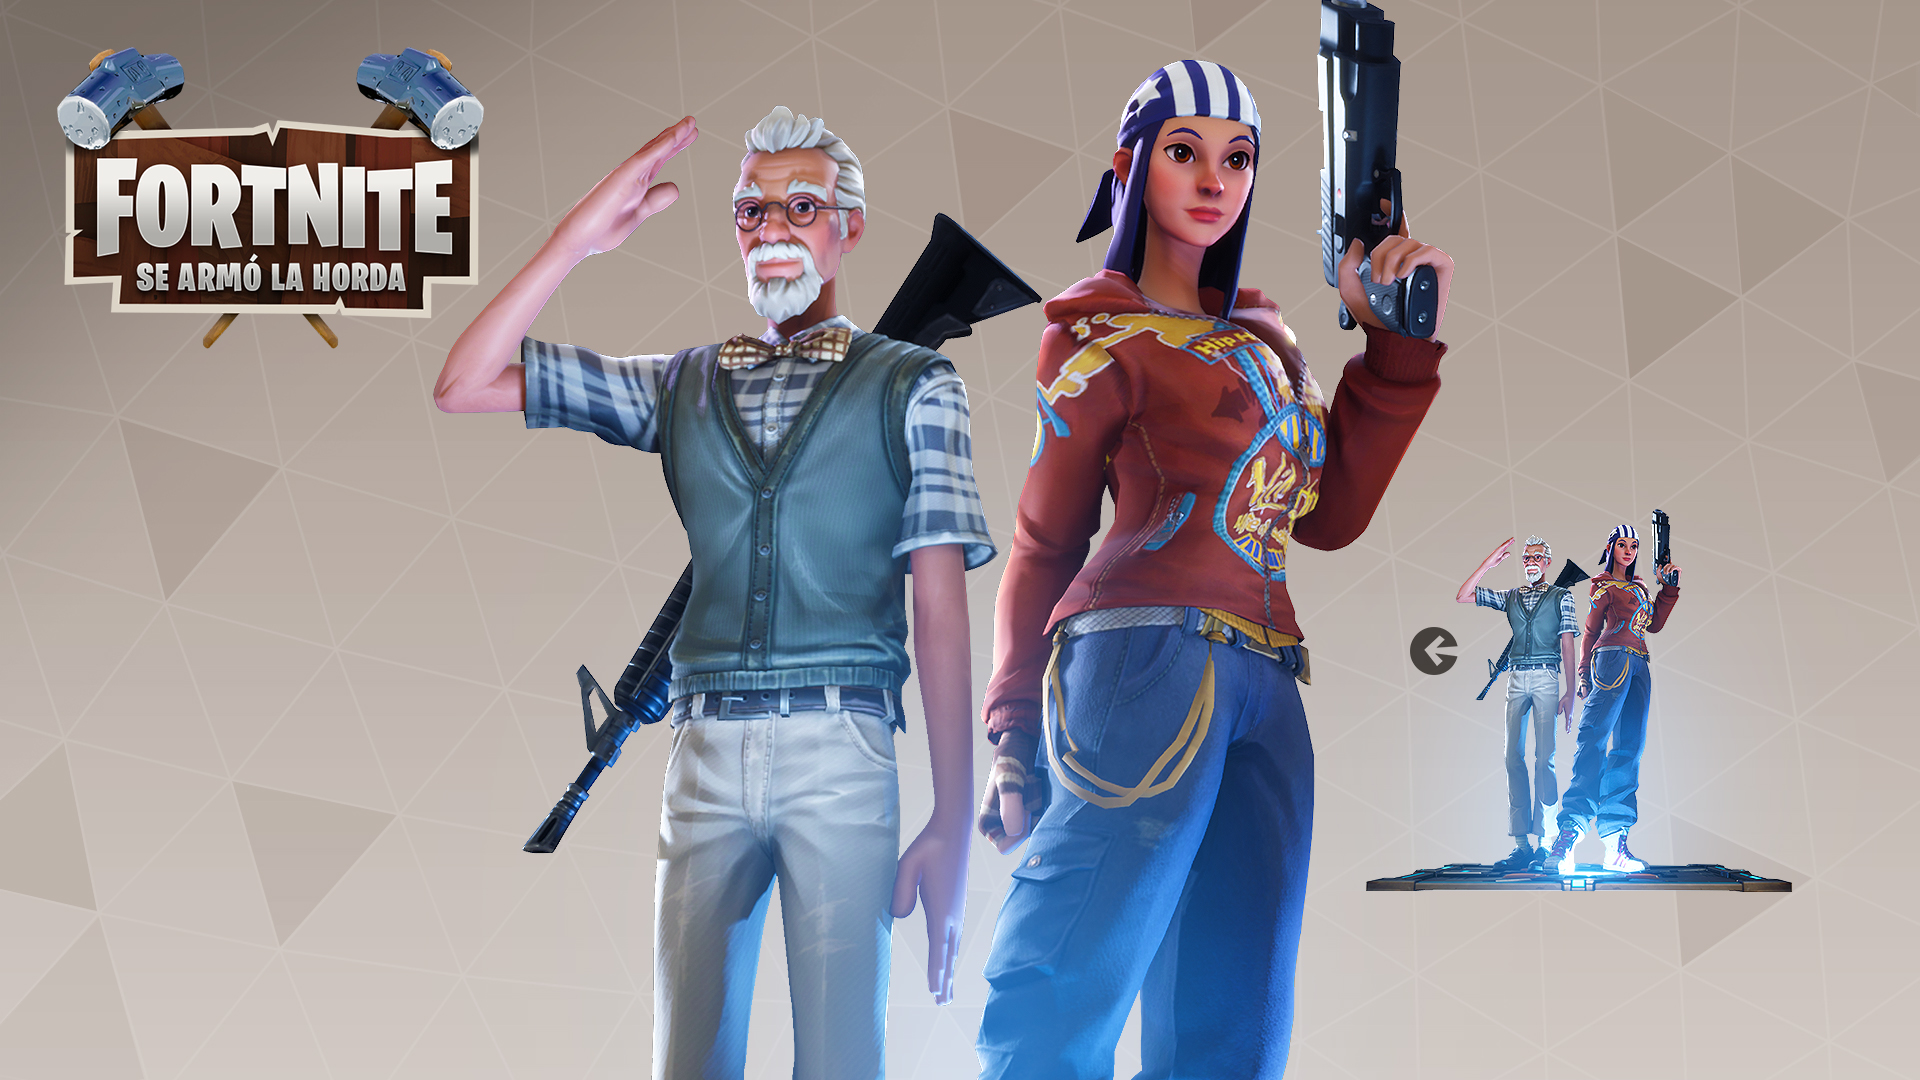 Fortnite%2Fblog%2Fea-1-7-patch-notes%2FES-ES-HB-Defenders-1920x1080-26bc0c97c63e6db487bc3d2fc50de9f2fa31c87a